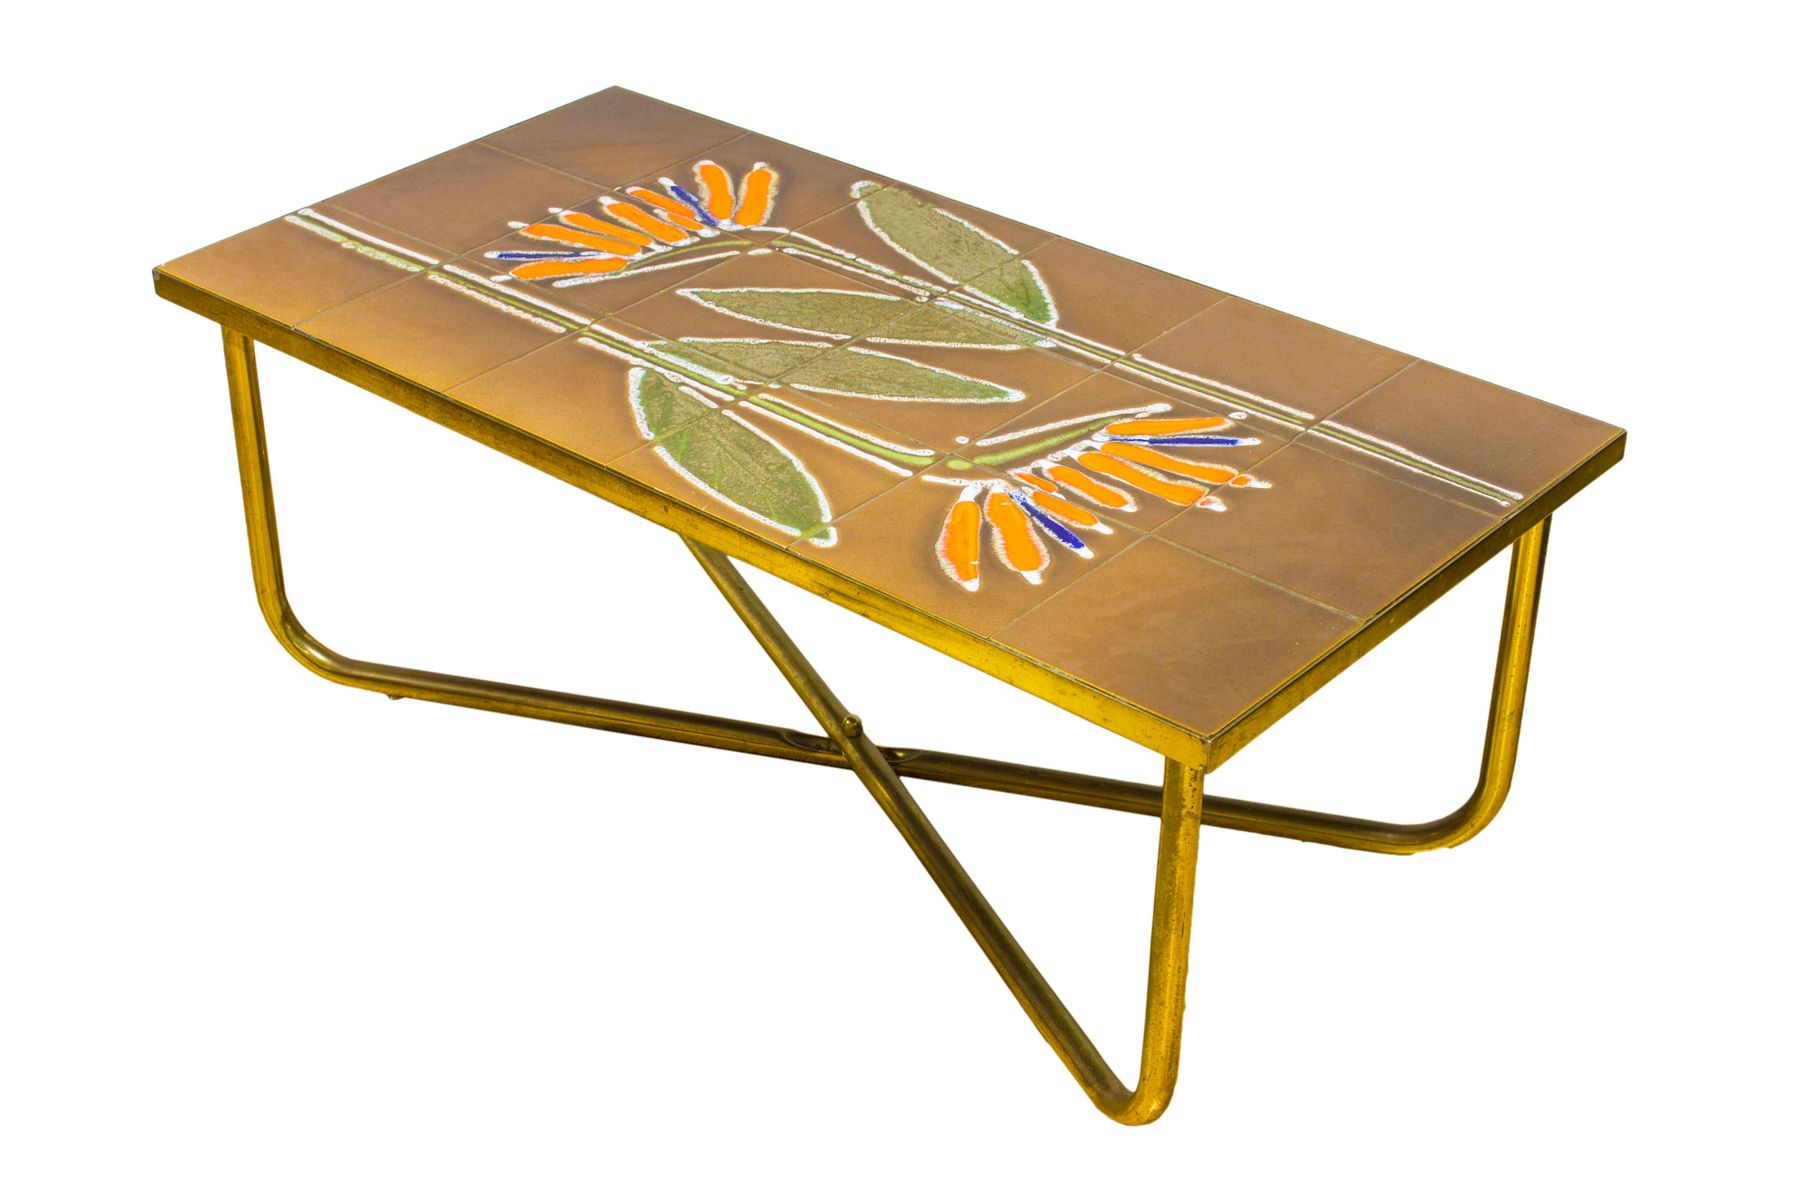 Vintage Danish Tiled Coffee Side Table from Adri for sale at Pamono